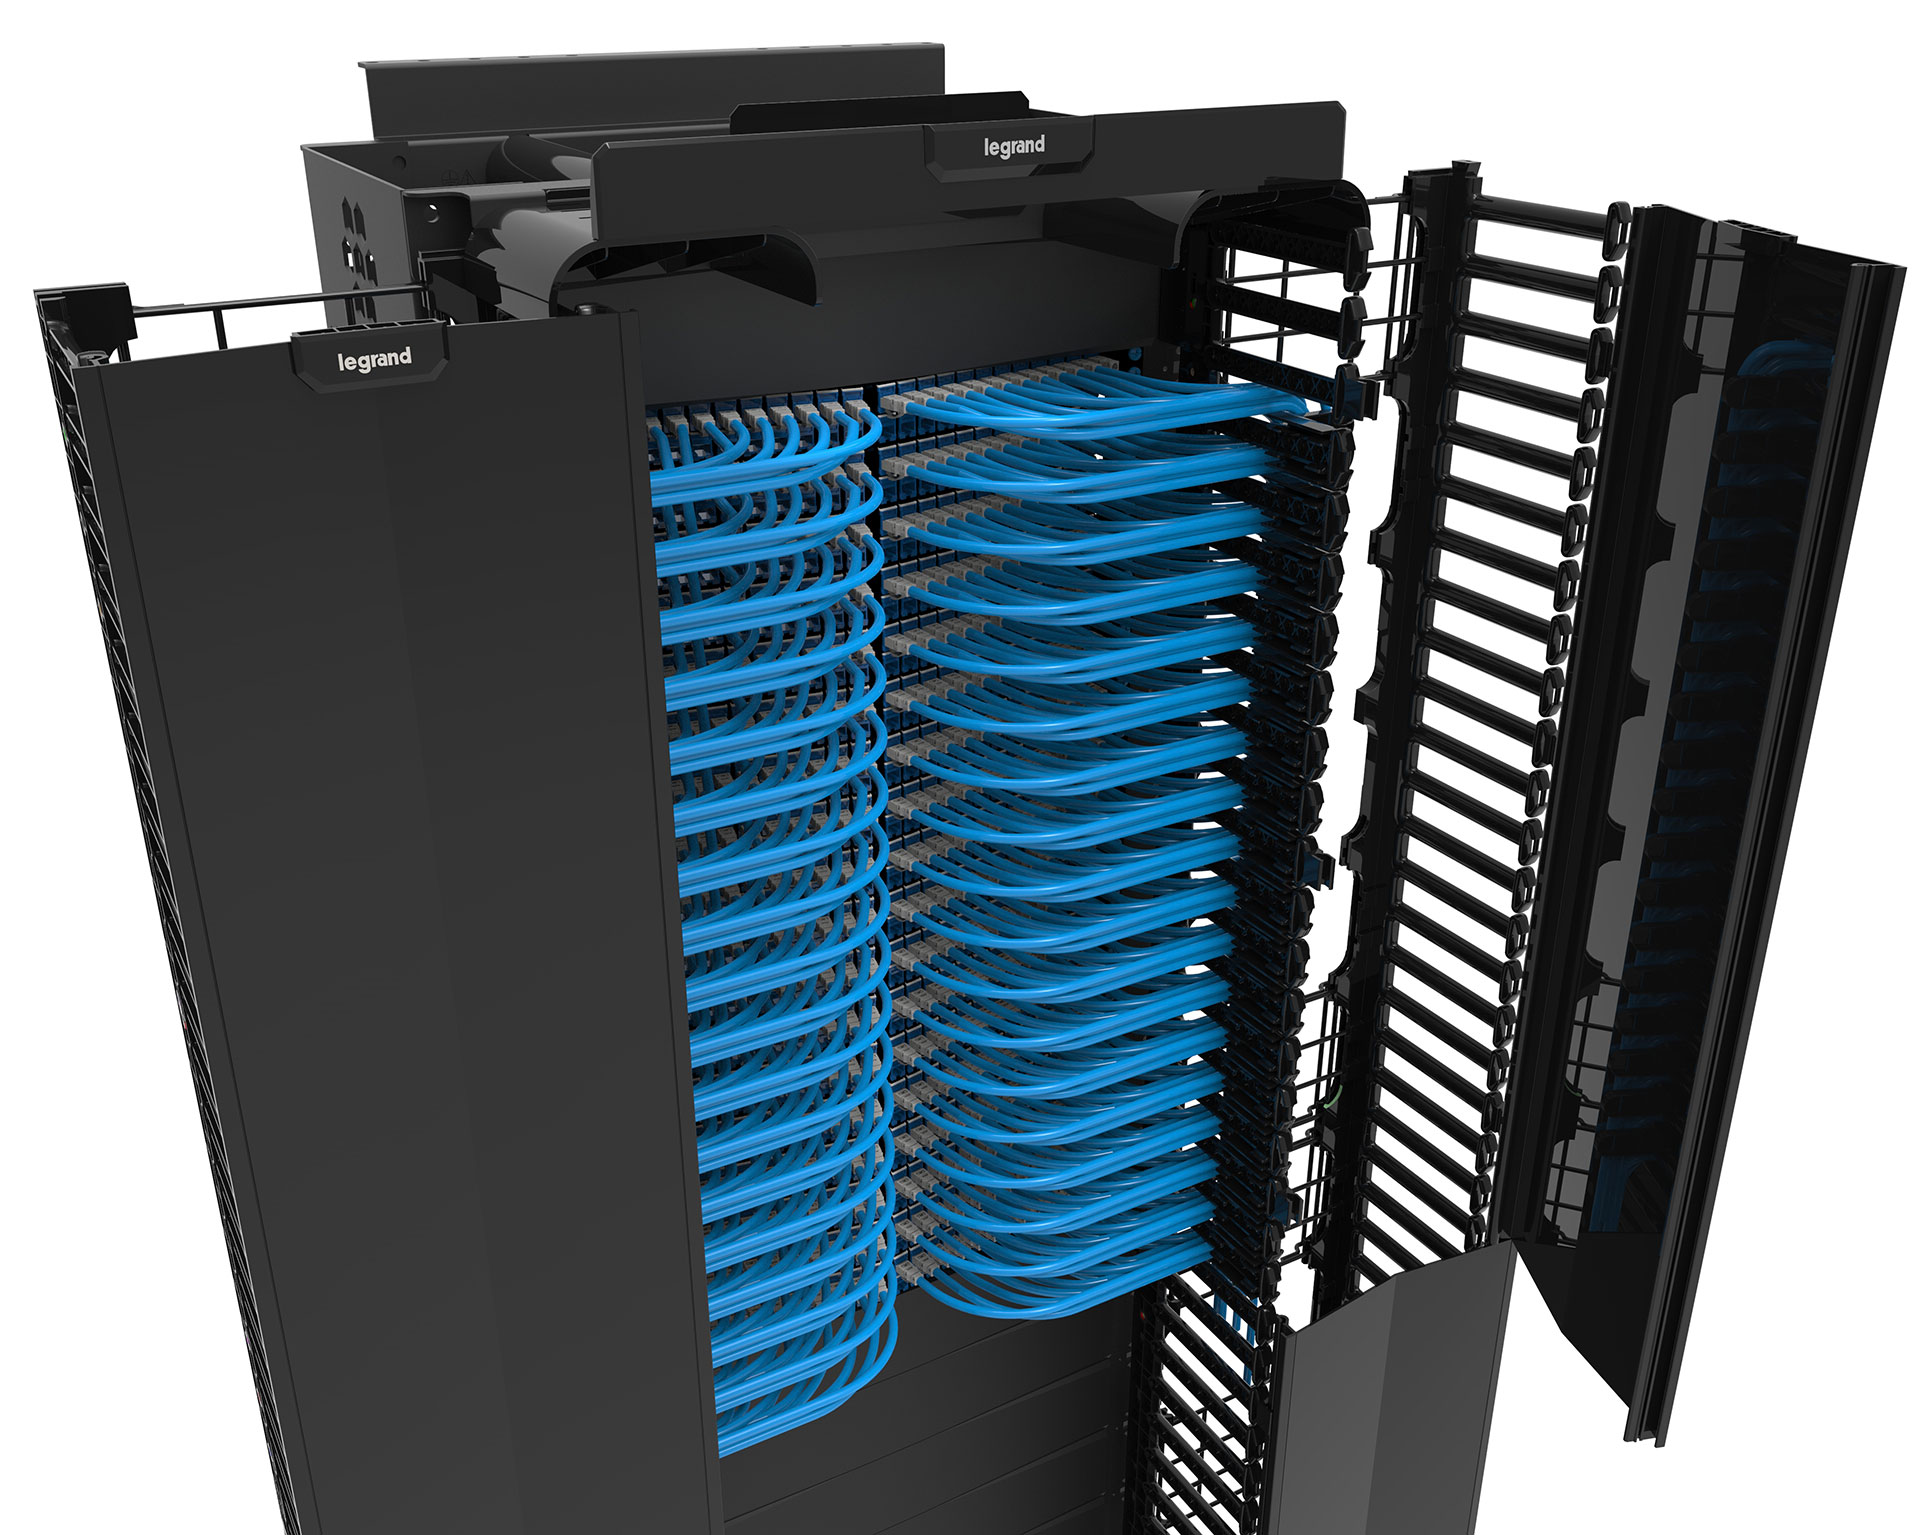 Legrand rack cable manager rendered in KeyShot